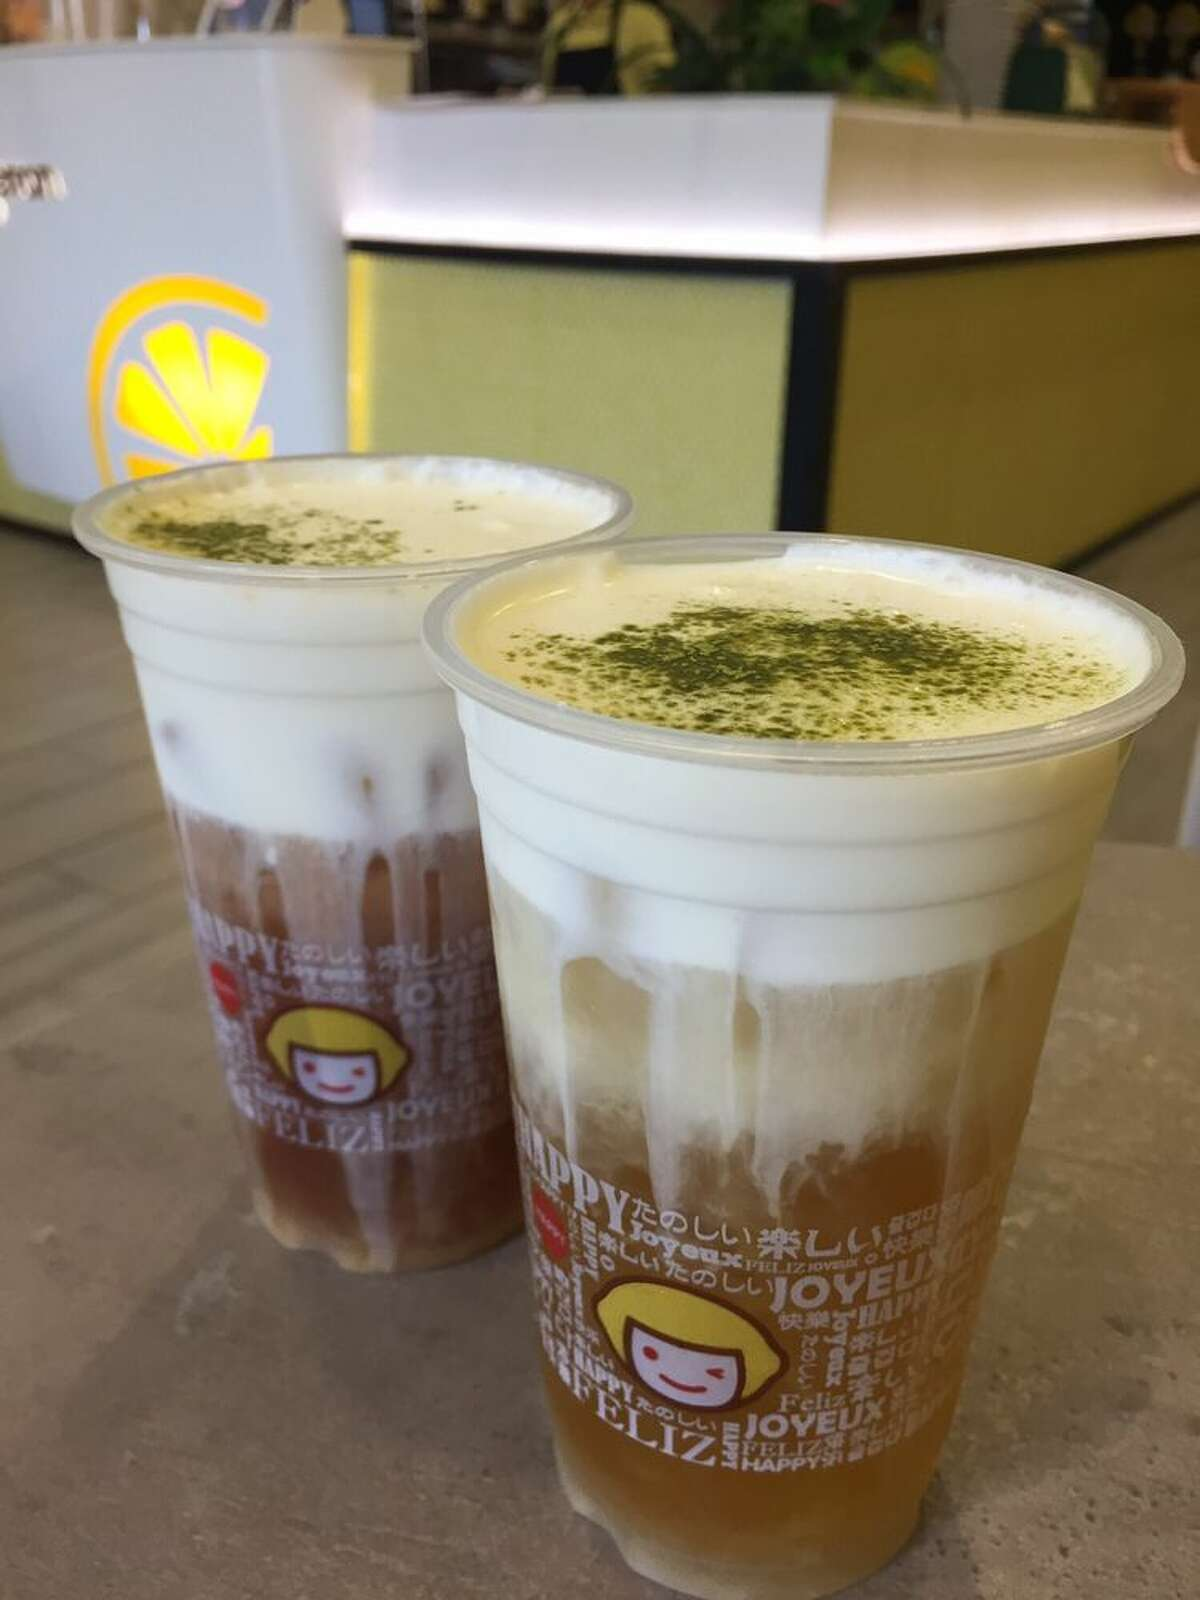 Click ahead to see where you can buy cheese tea in the Bay Area. Happy Lemon has nine different cheese teas including green, milk and chocolate teas with salted cheese. They also offer three teas with a tiramisu salted cheese float. Happy Lemon has a few locations in the Bay Area including Berkeley, San Jose and Burlingame.